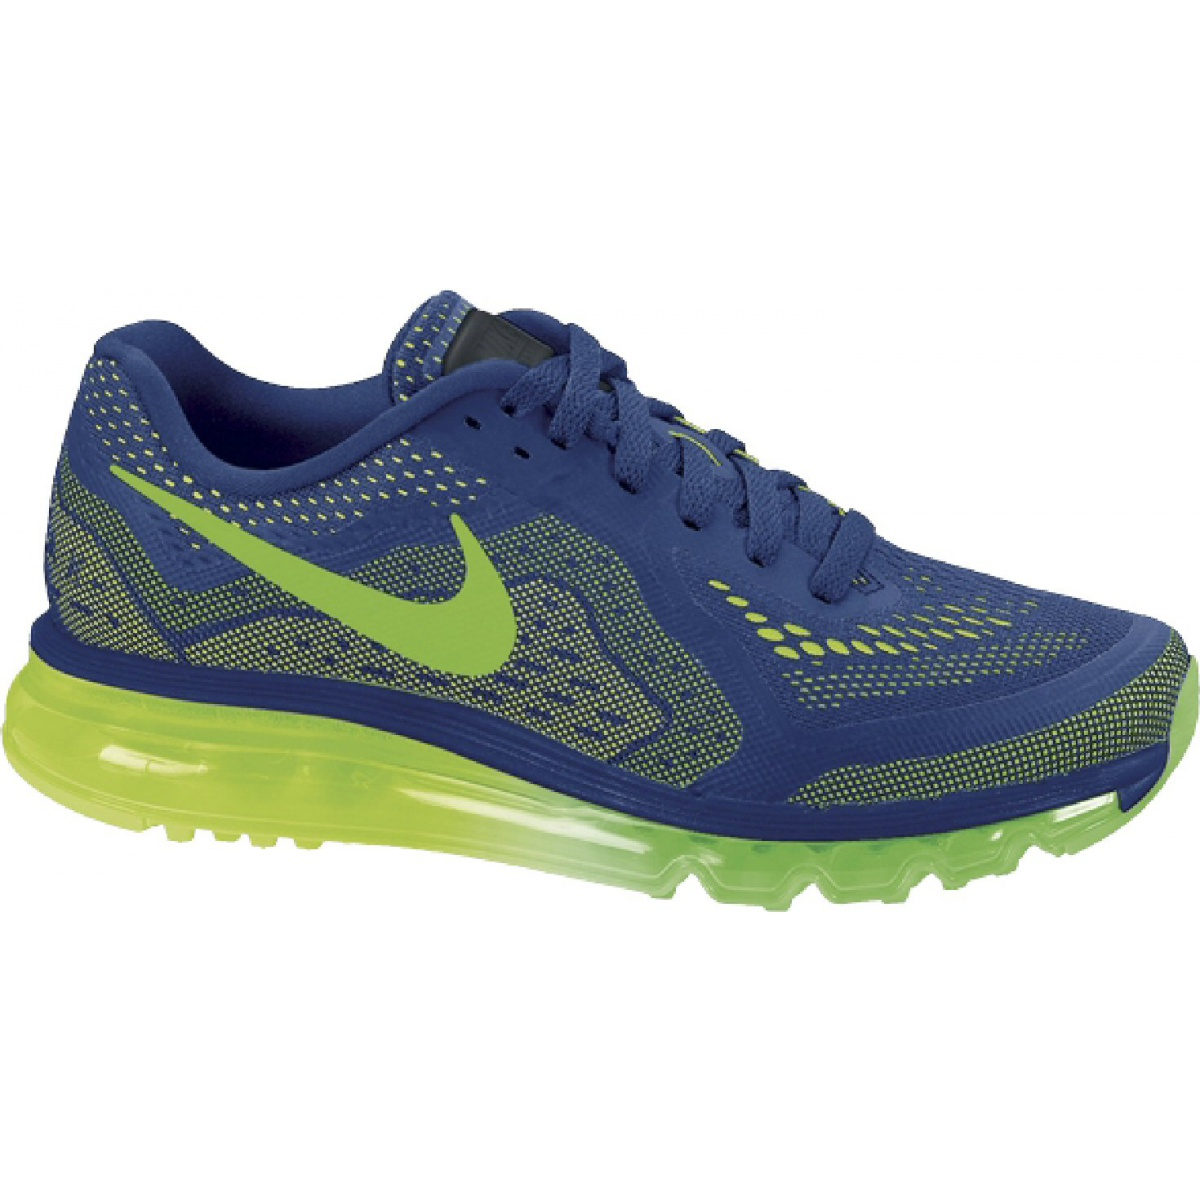 best sneakers 4c37a 279d2 inexpensive nike air max 2014 blau lime laufschuhe herren 2d879 1d577